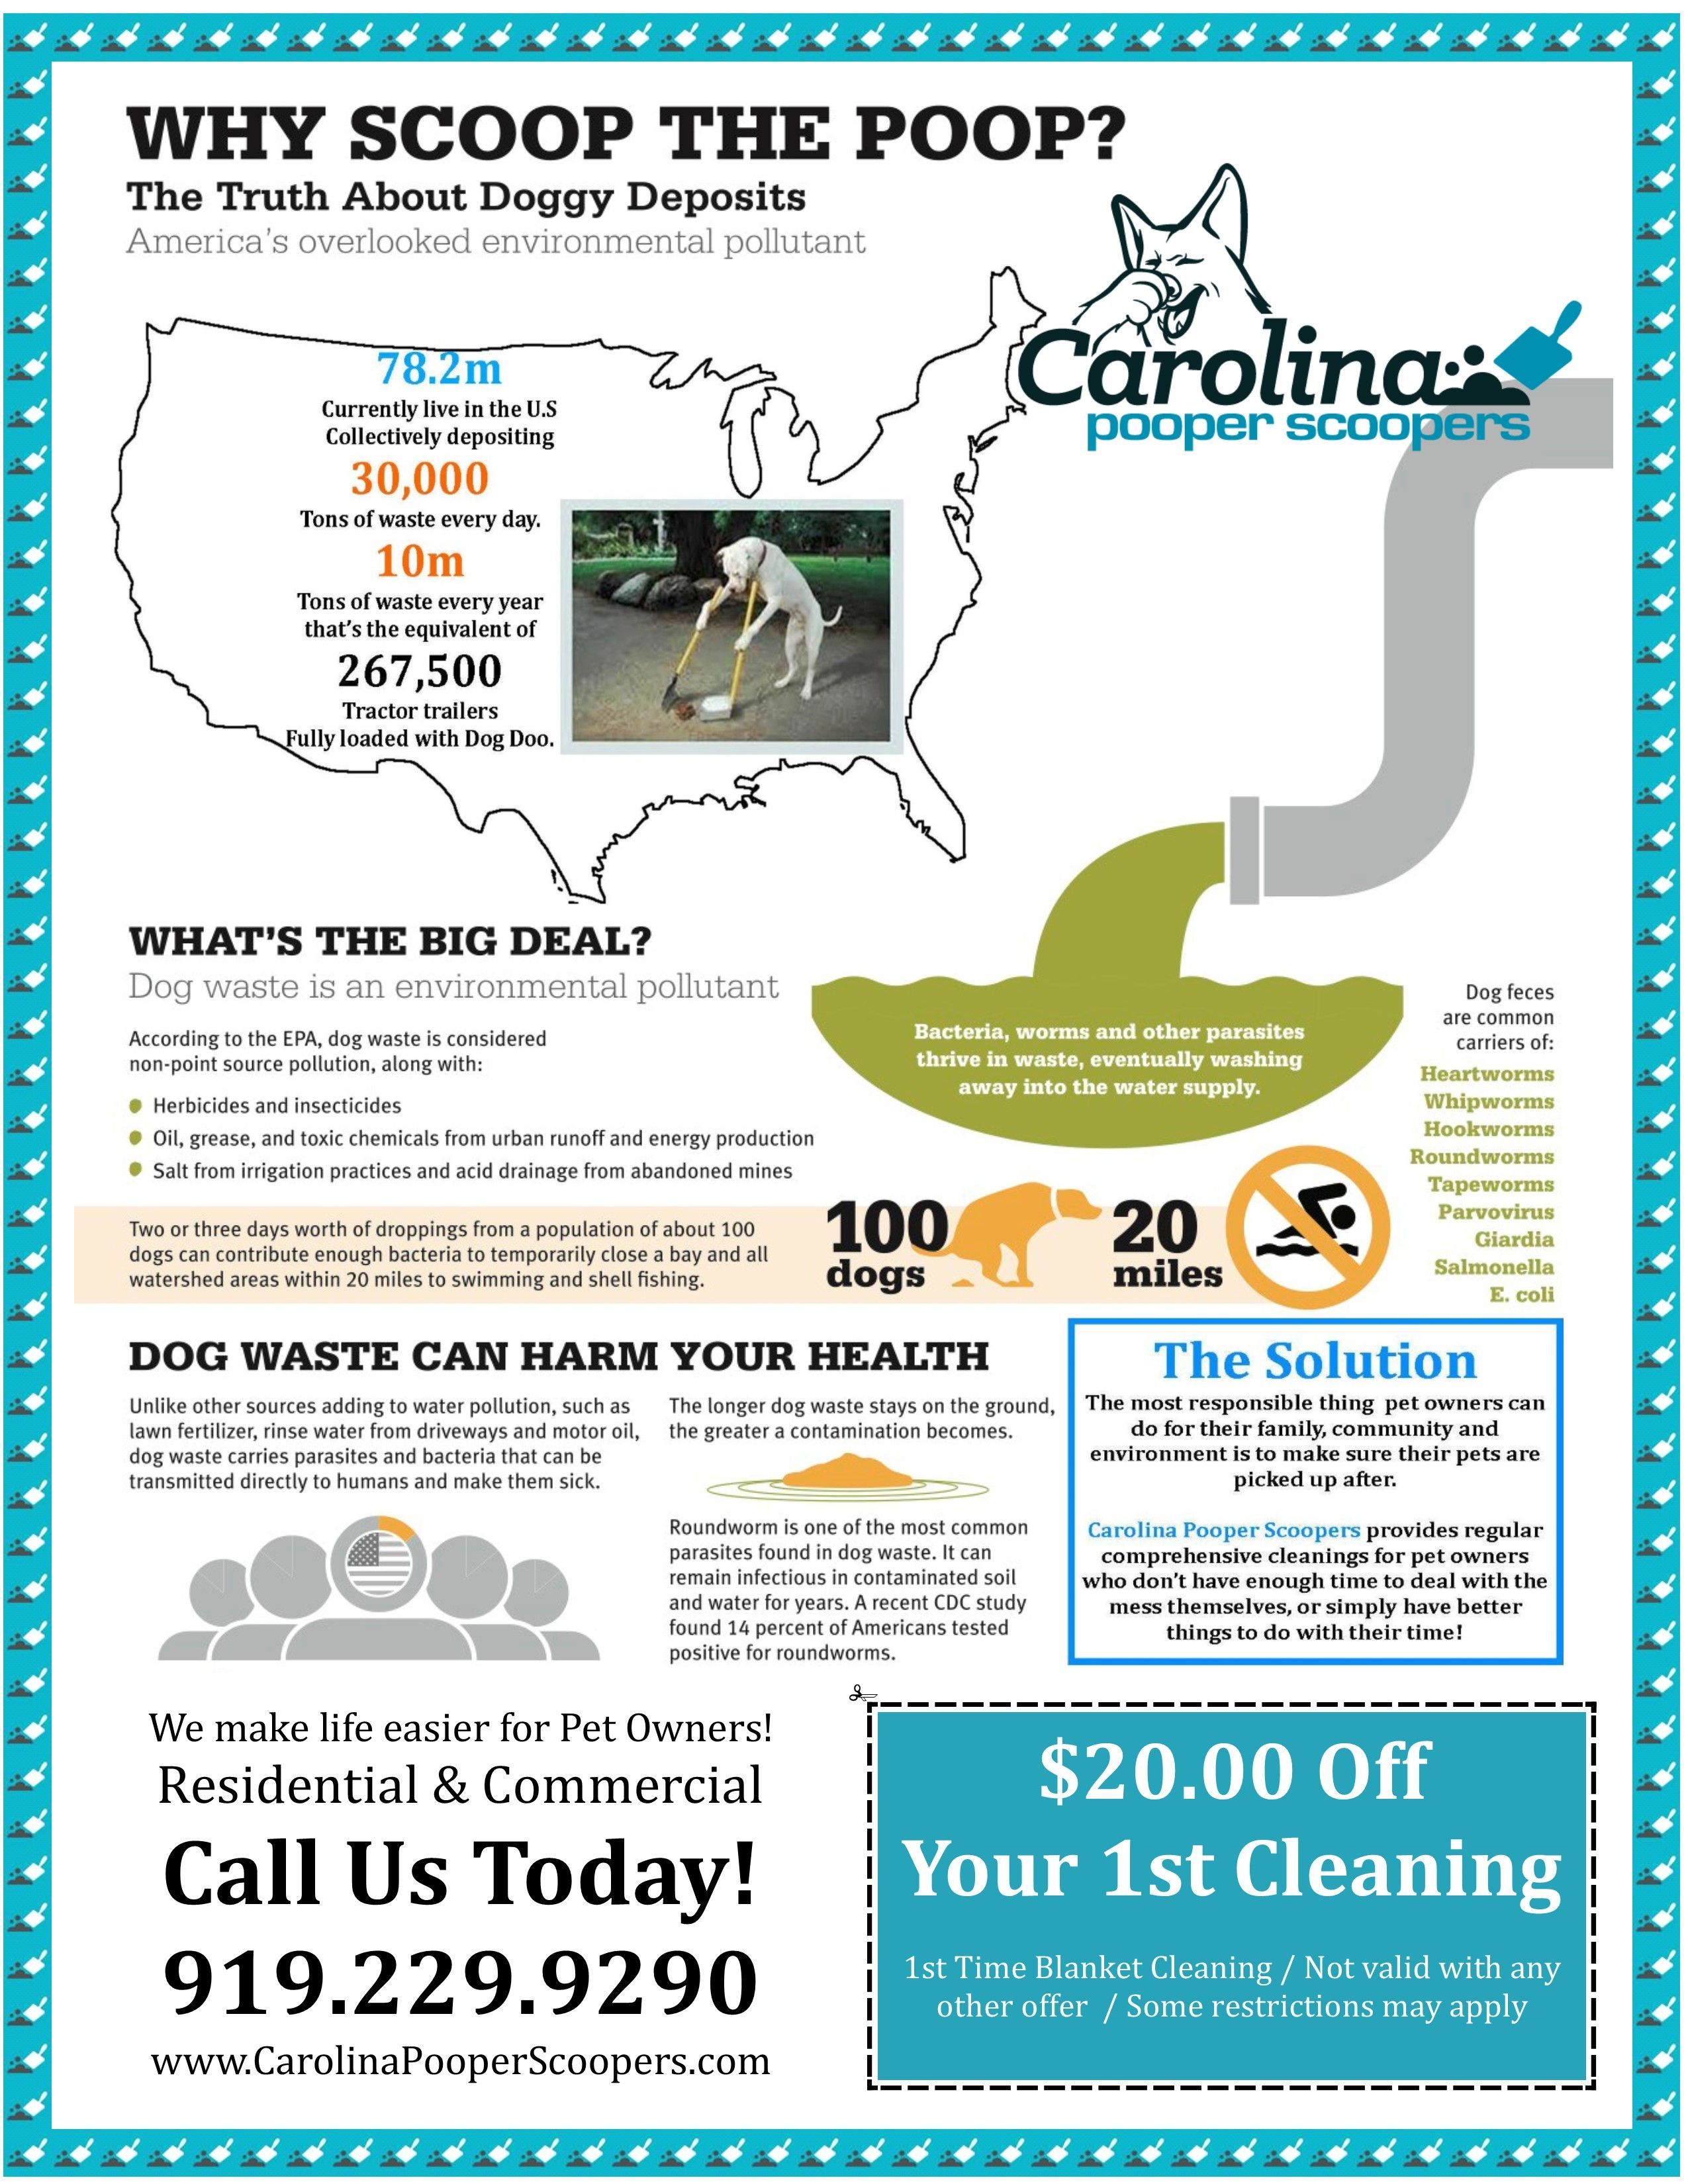 Carolina Pooper Scoopers Is A Raleigh Nc Based Animal Waste